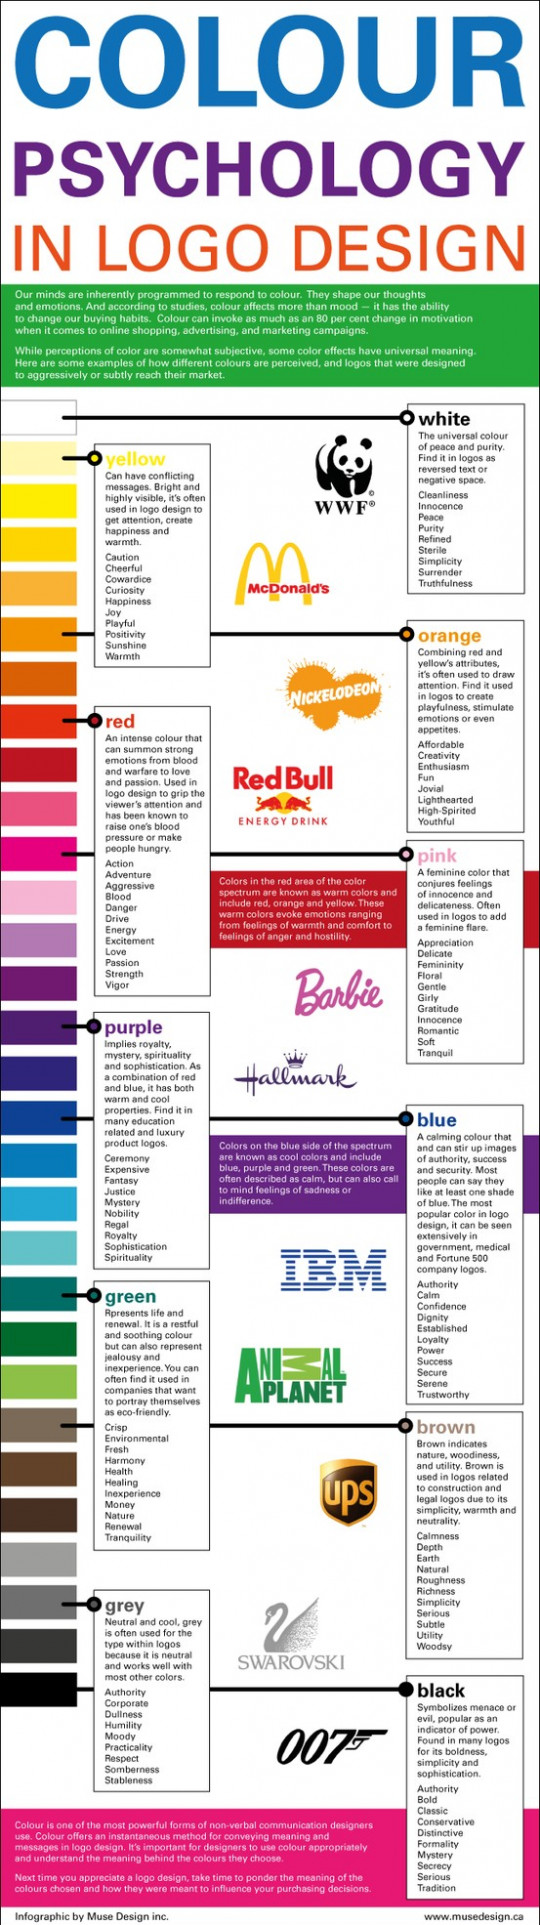 Color Psychology in Logo Design